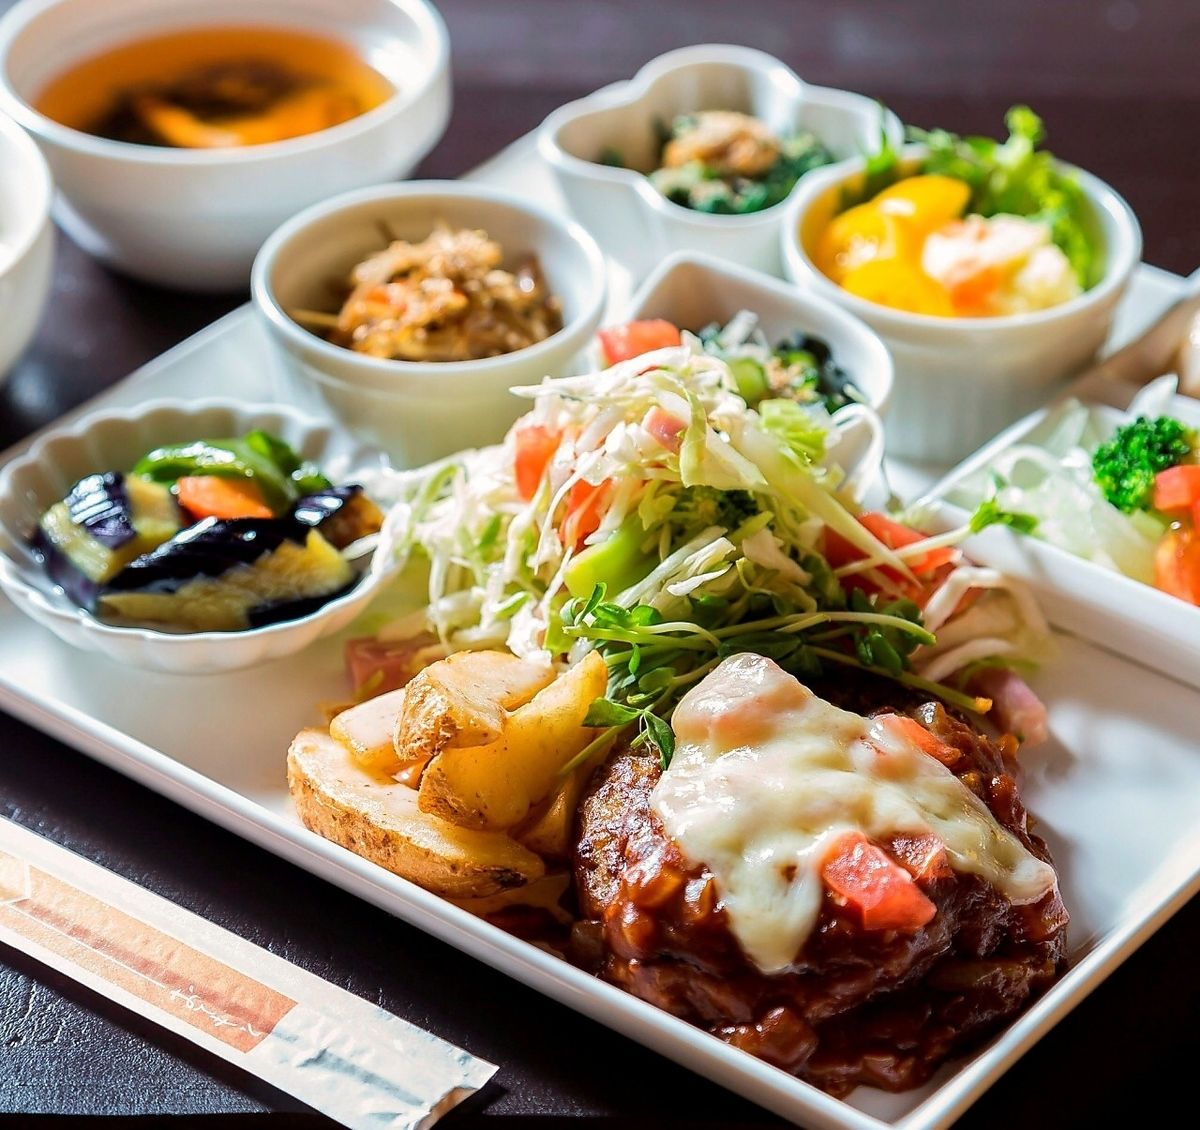 【No.14】 Plate lunch where you can eat 10 kinds of vegetables